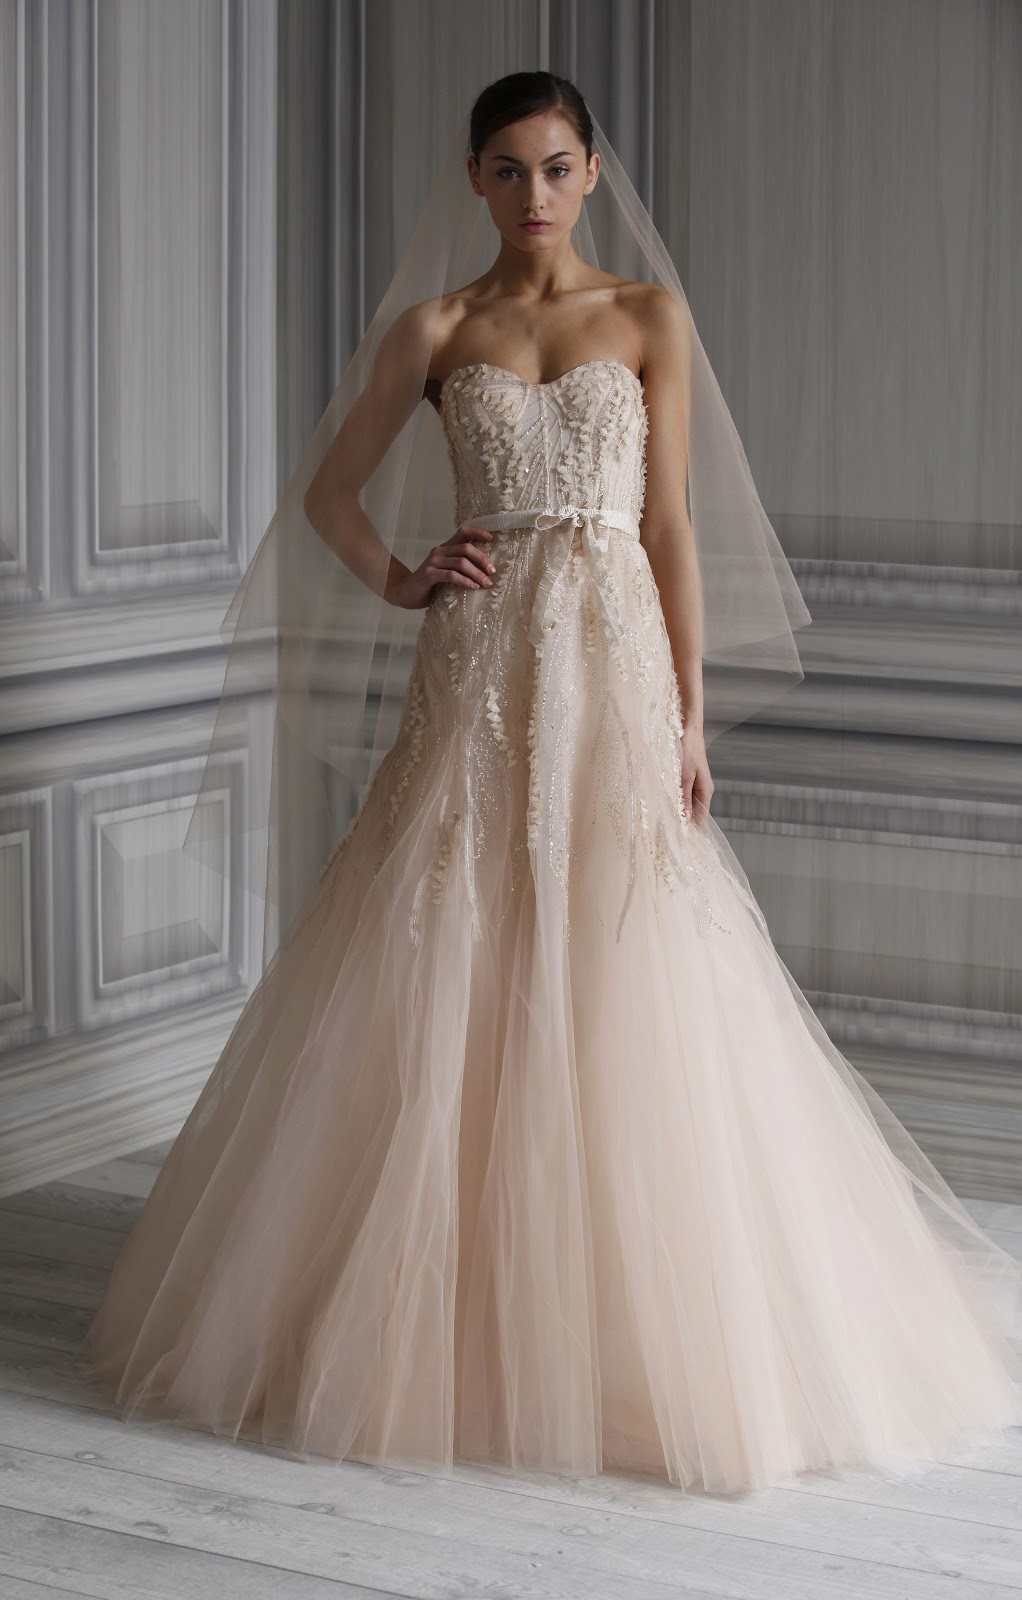 Great Monique Lhuillier Blush Wedding Gown 1022 x 1600 · 161 kB · jpeg